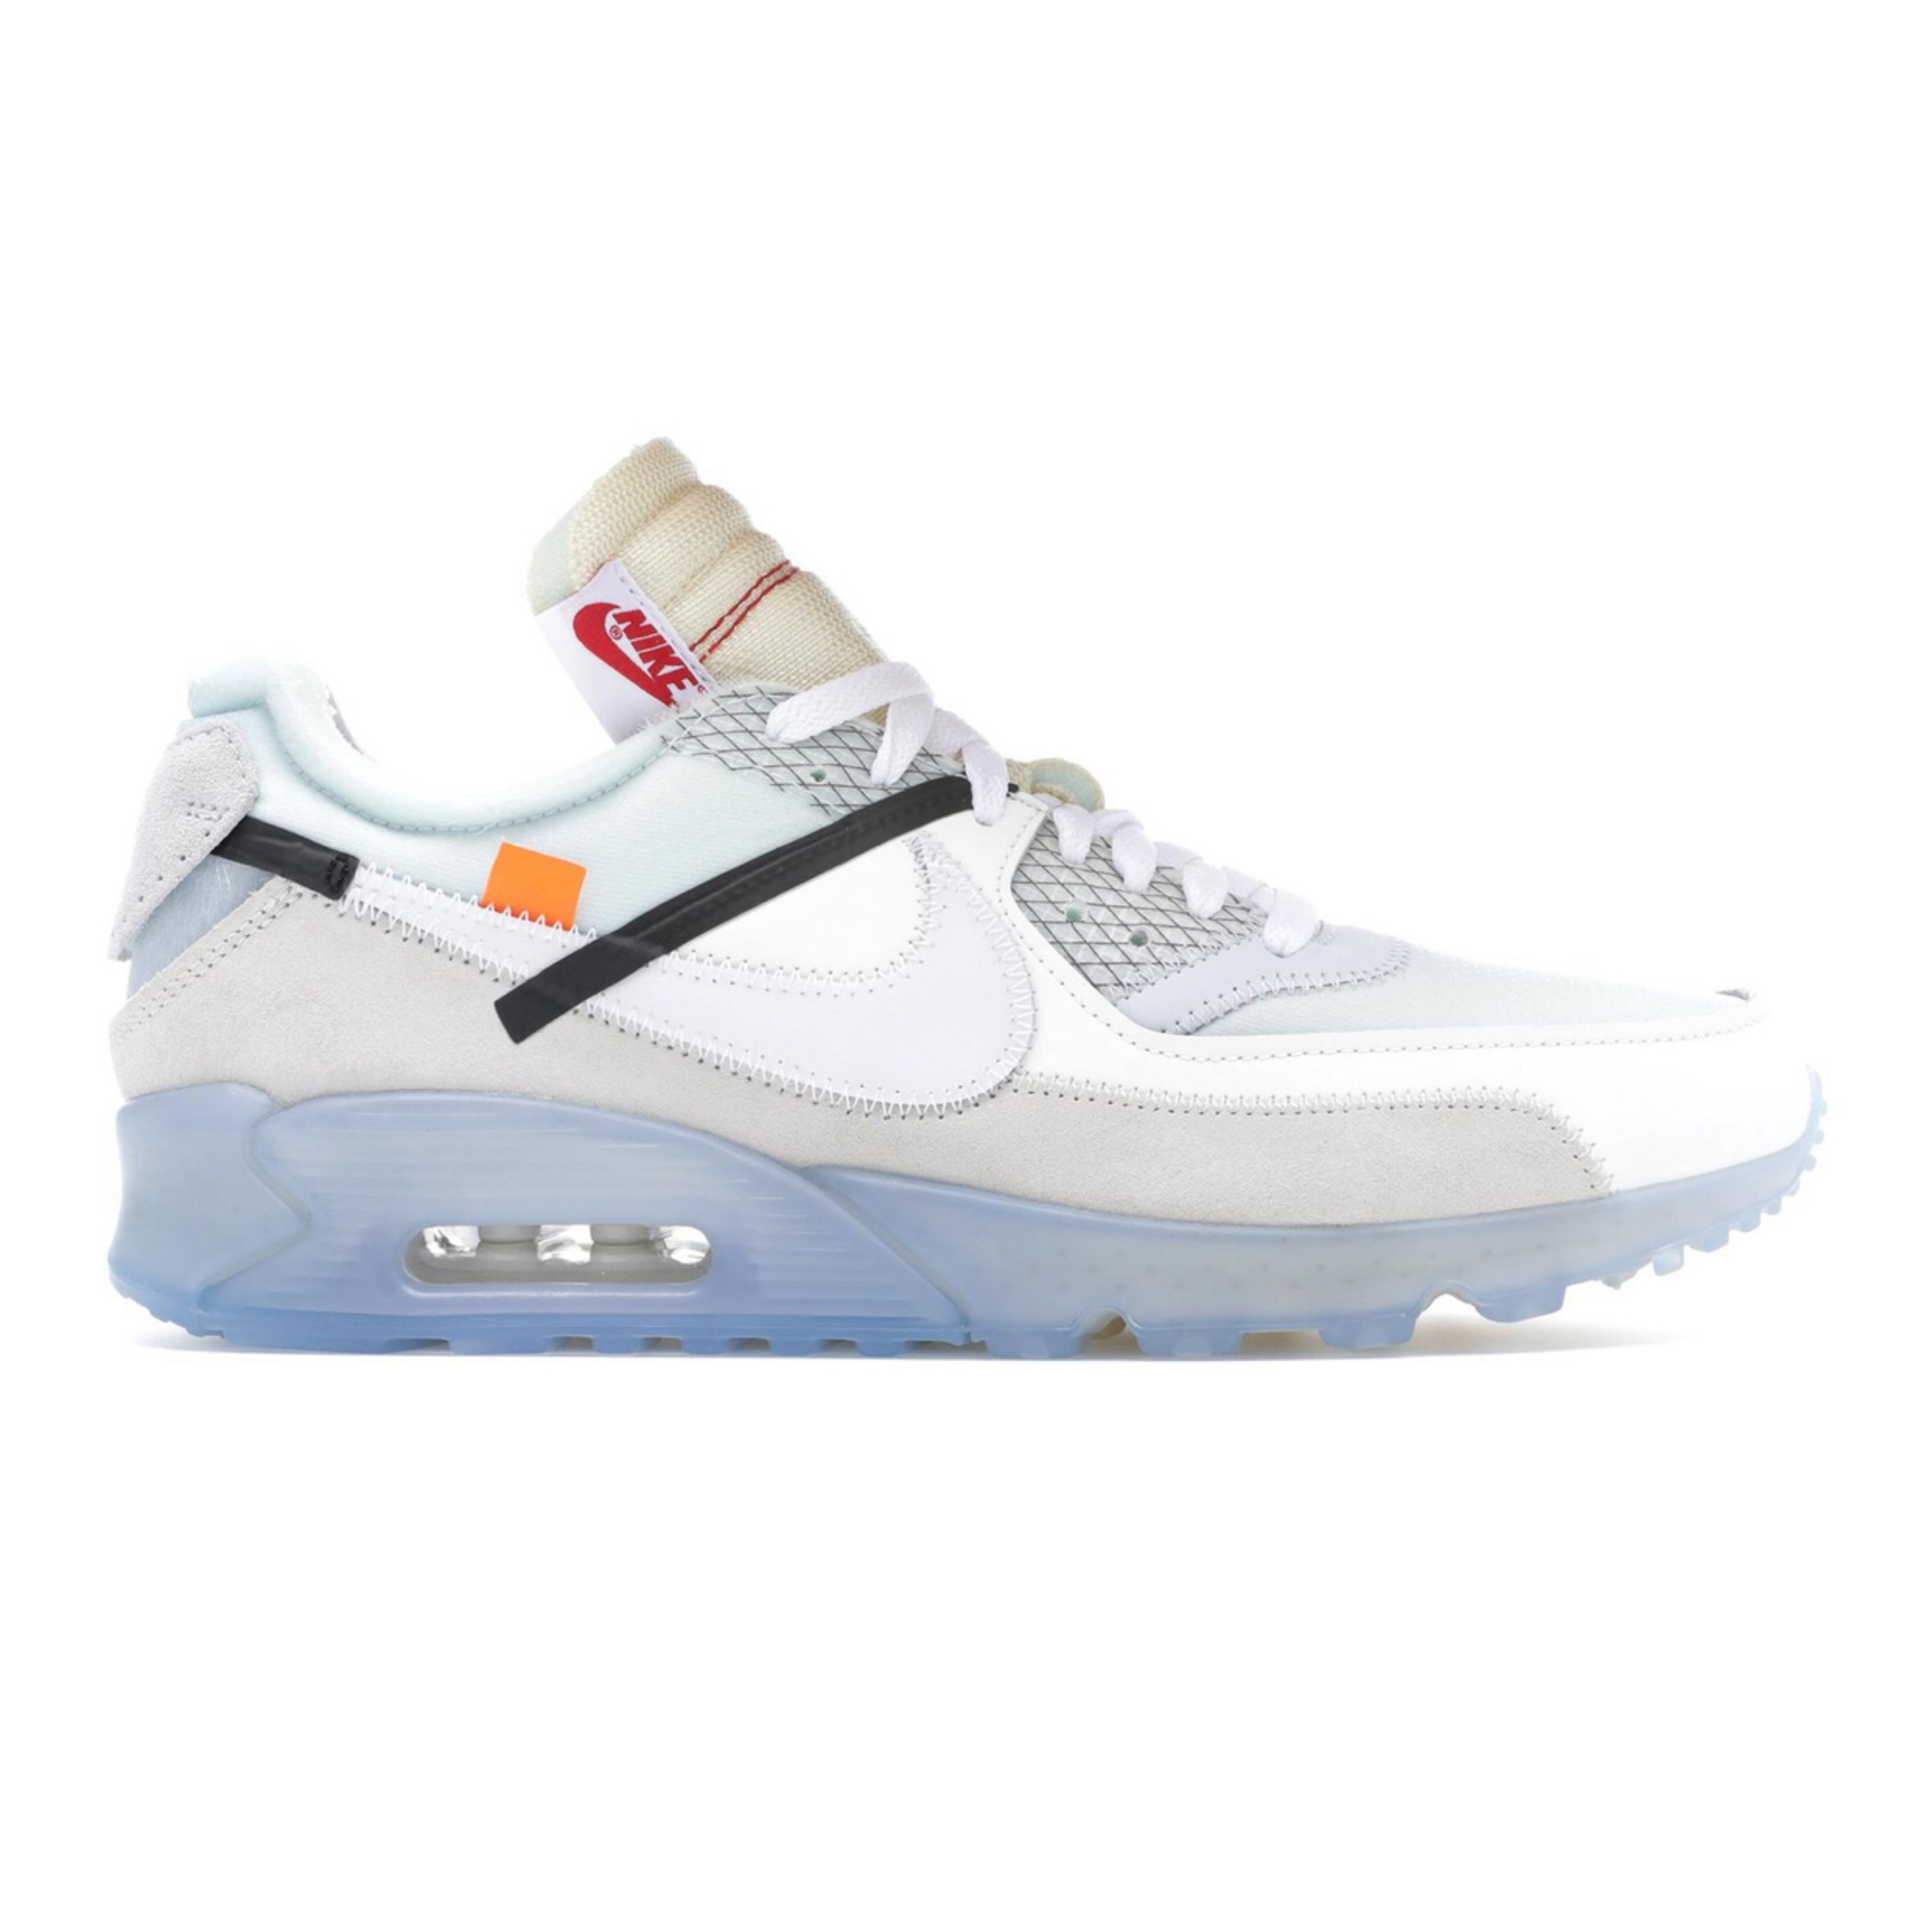 Off-White X Nike Air Max 90 Og (Pre-Owned)